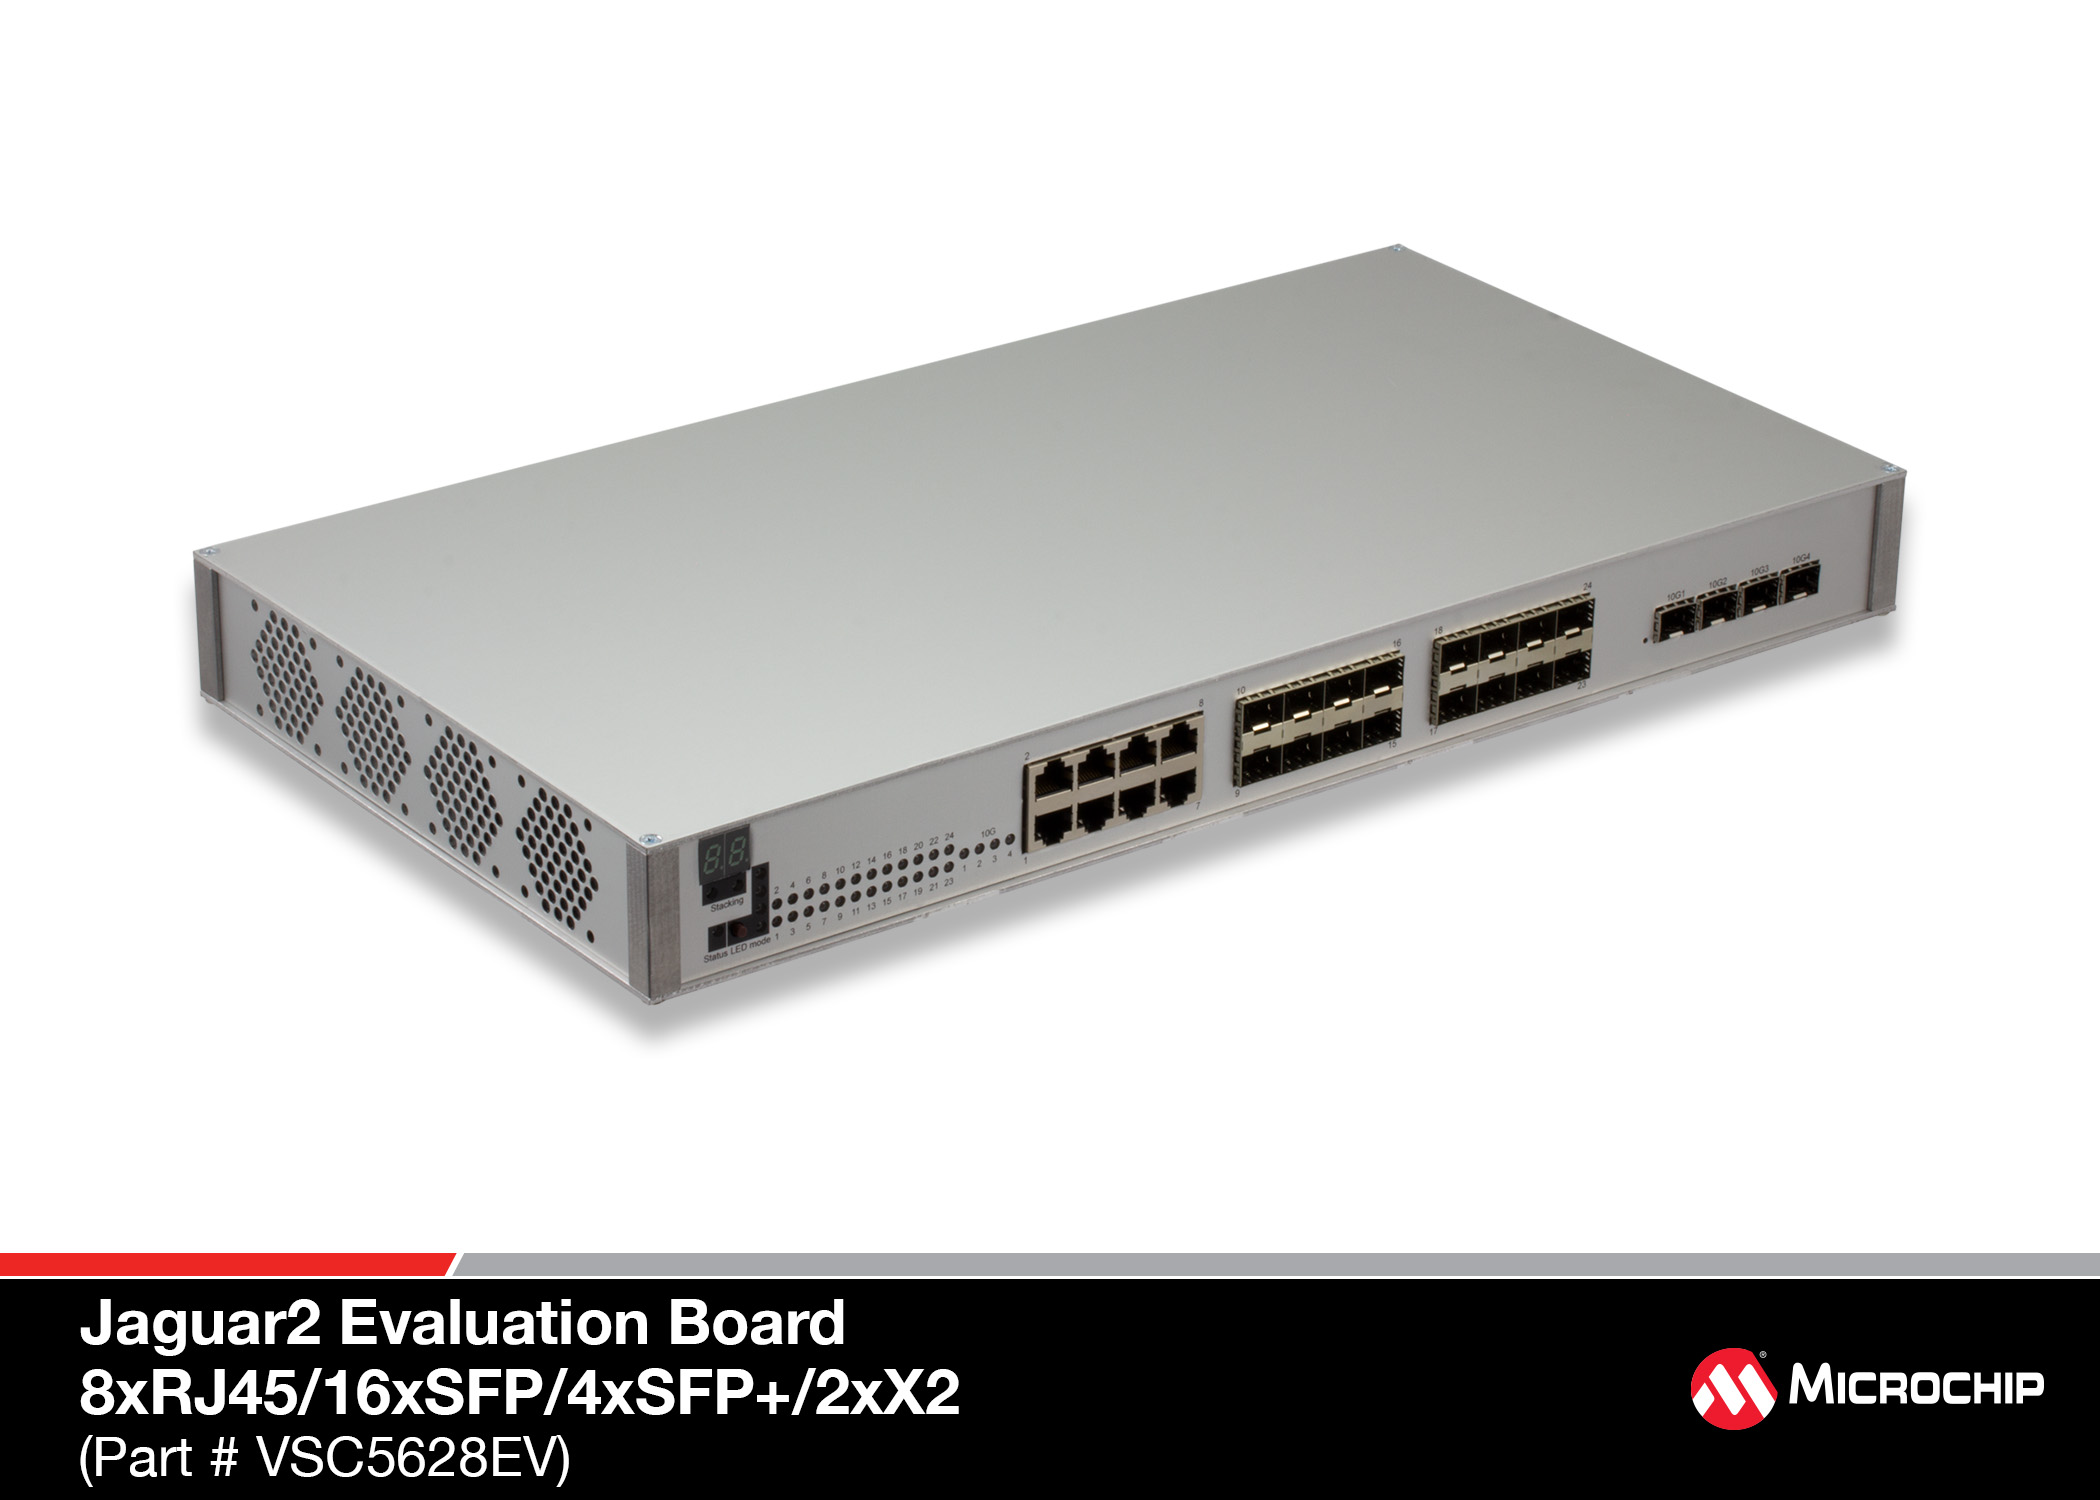 Development Tools Switches Use An Lcs Asc2 To Operate The Switch And Stm2 For Real Vsc5628ev Ethernet System Can Be Used Demonstrate Jaguar 2 Vsc7464 68 Sparx Iv Vsc7442 44 48